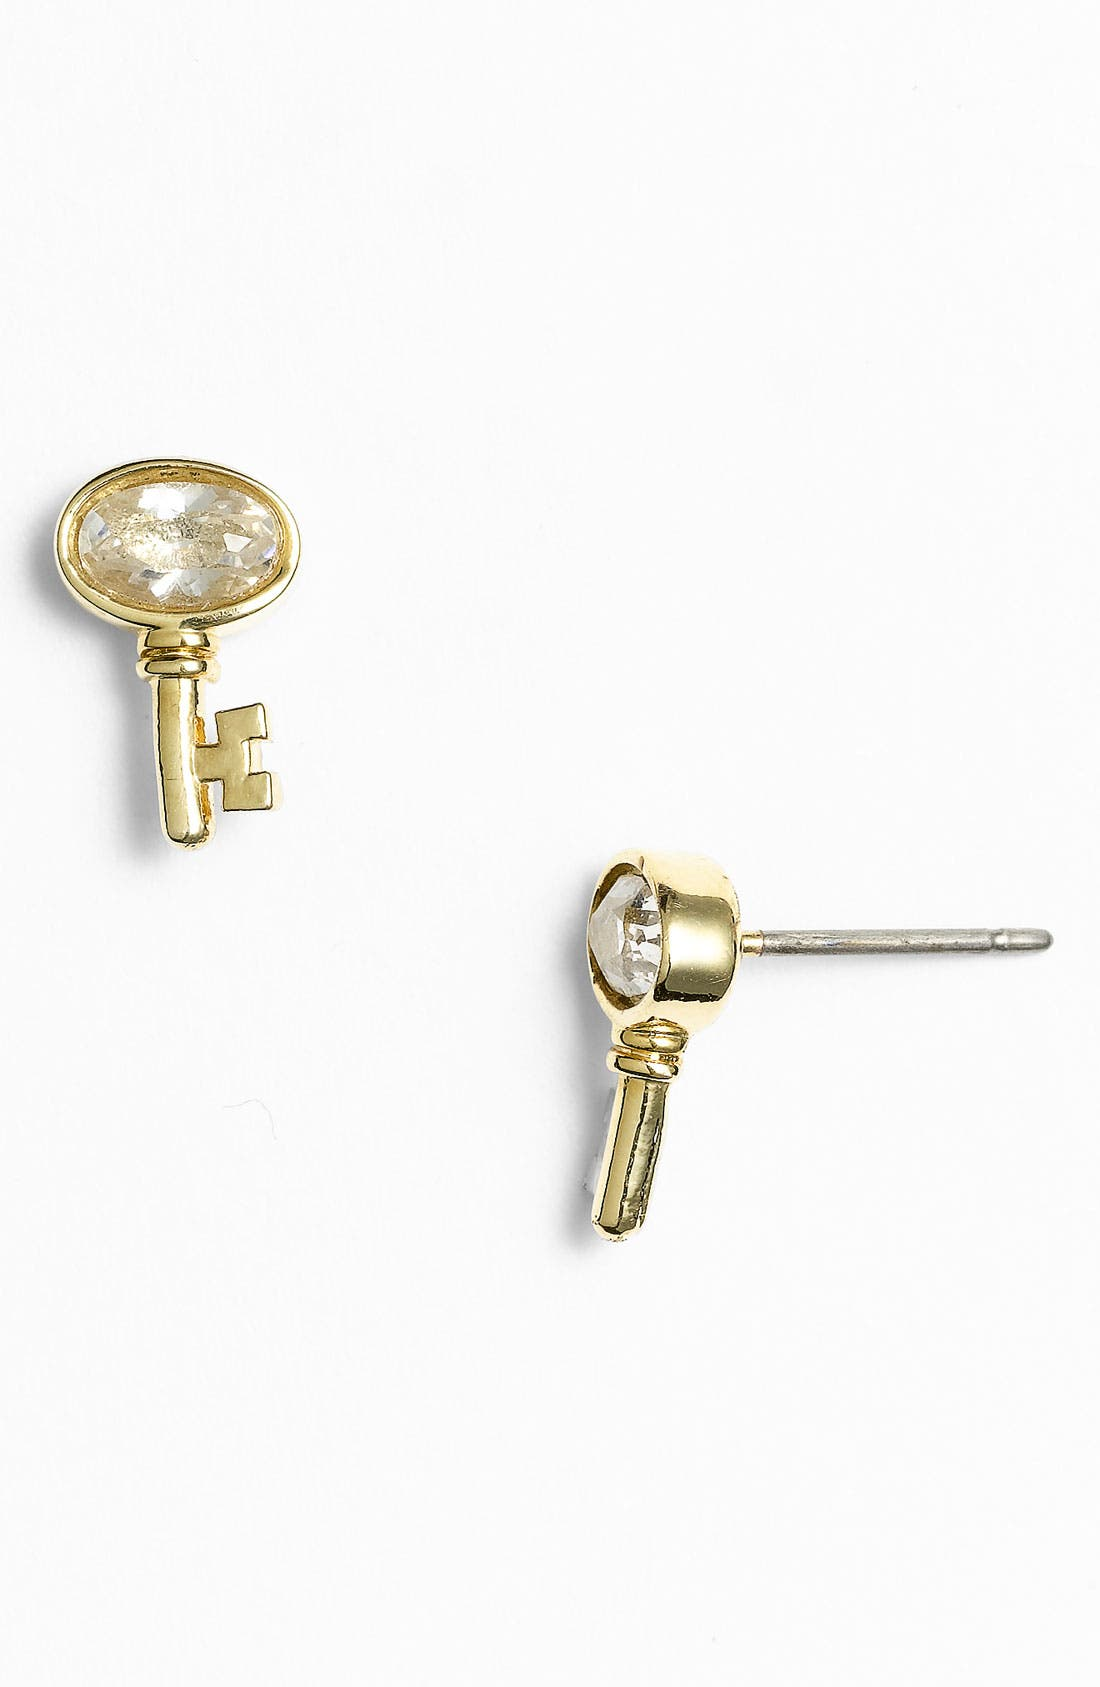 Alternate Image 1 Selected - Juicy Couture 'Key to the Castle' Stud Earrings